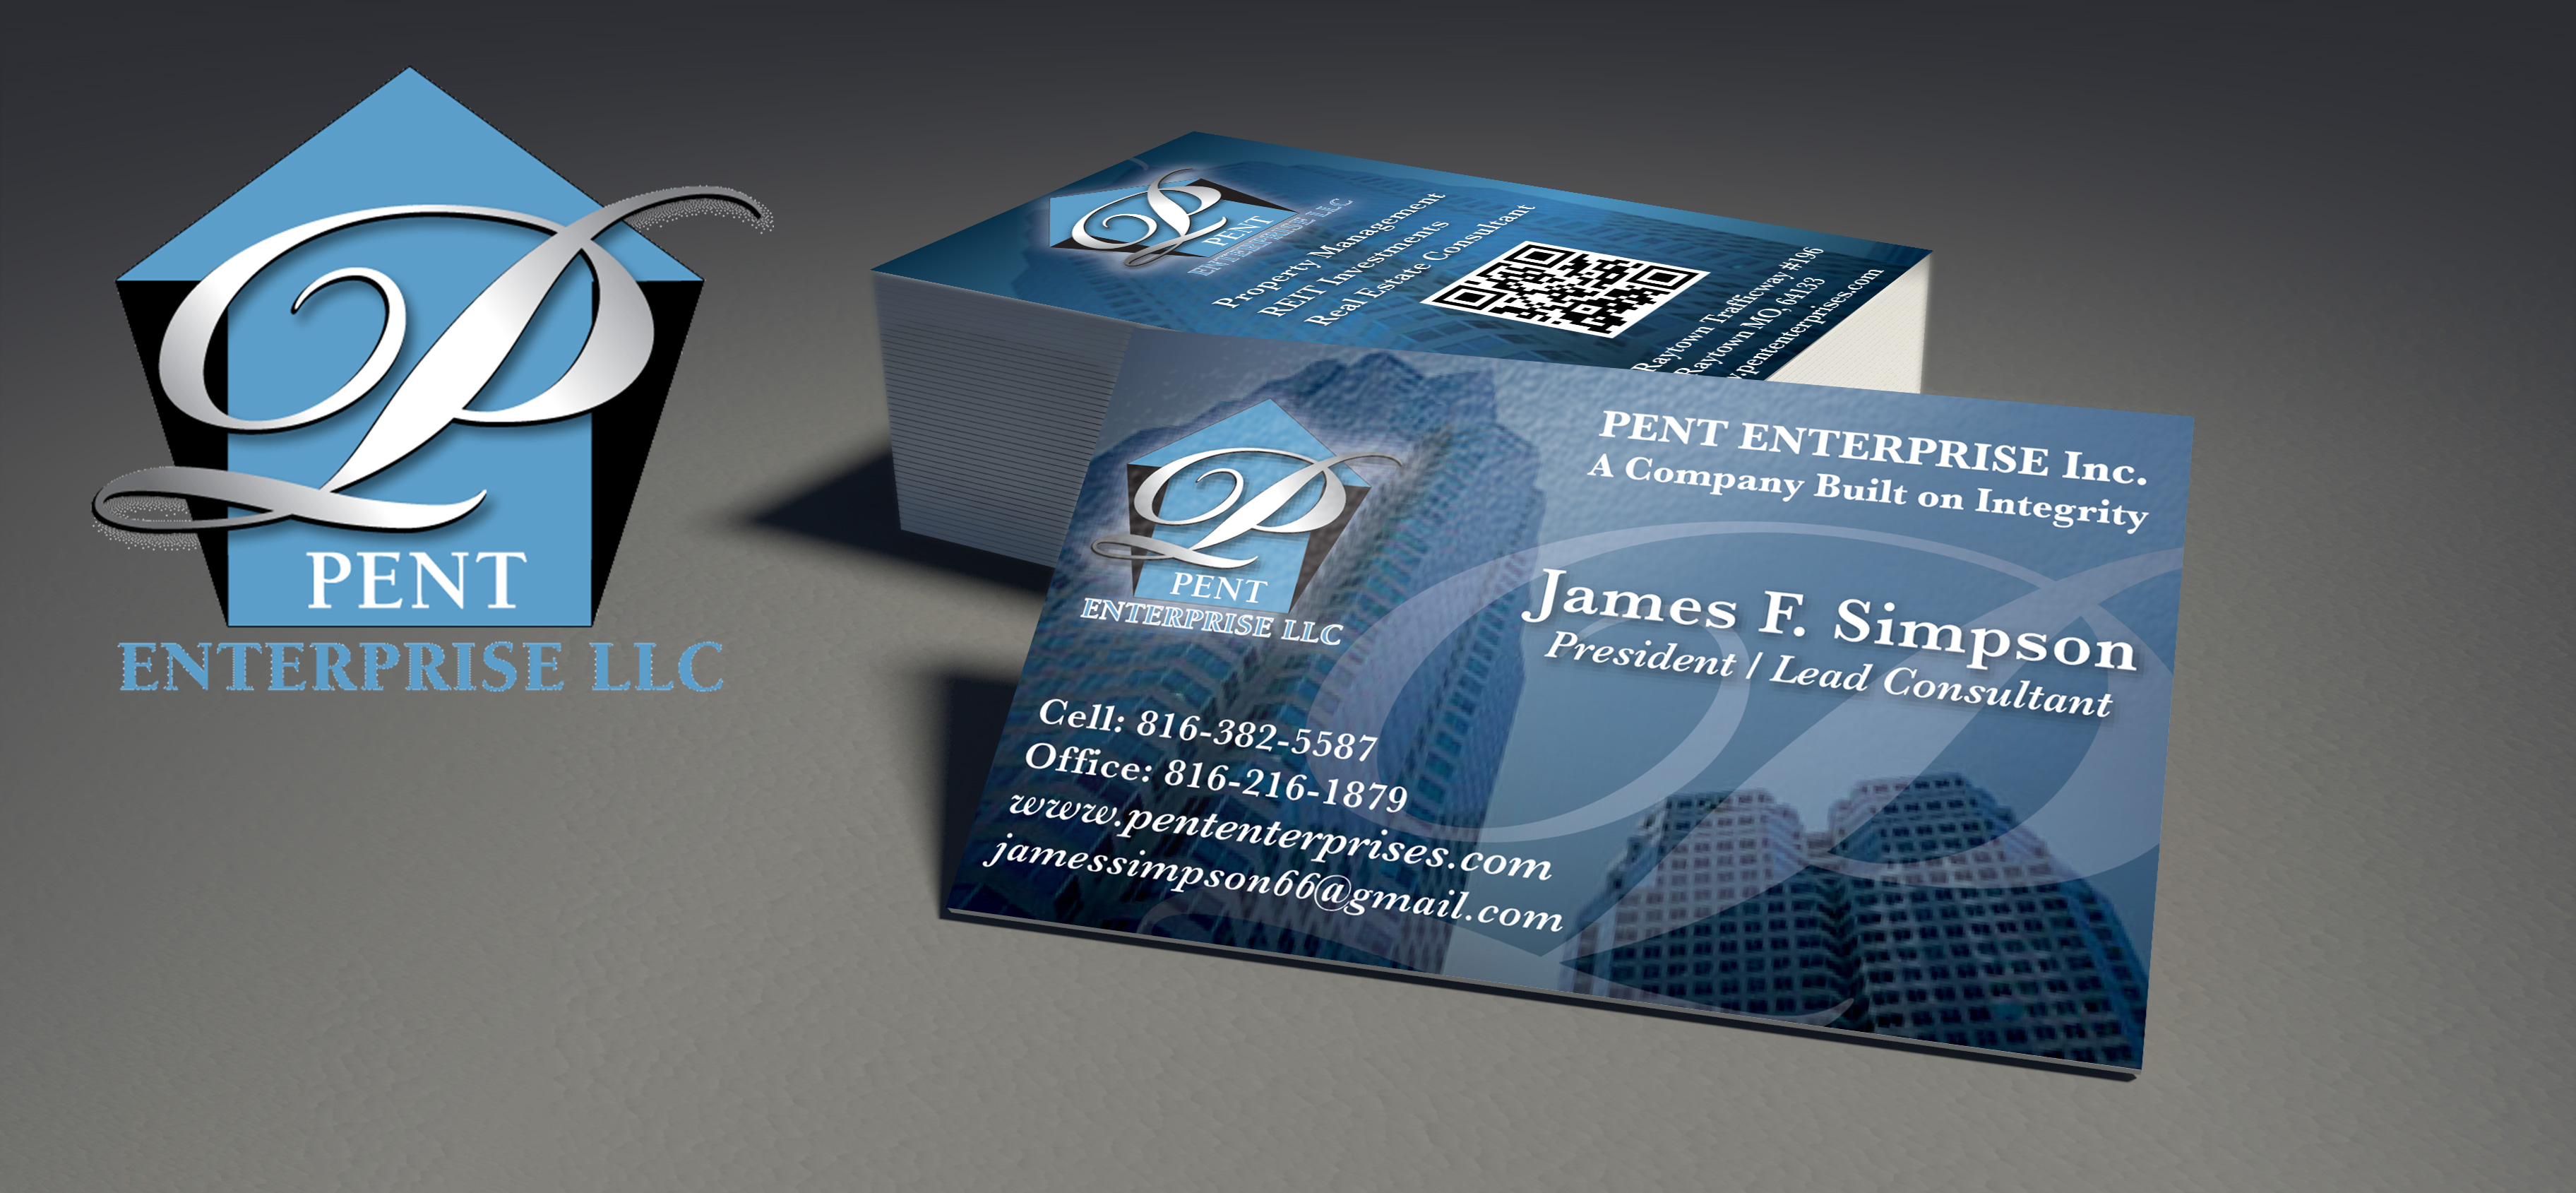 PENT Enterprises